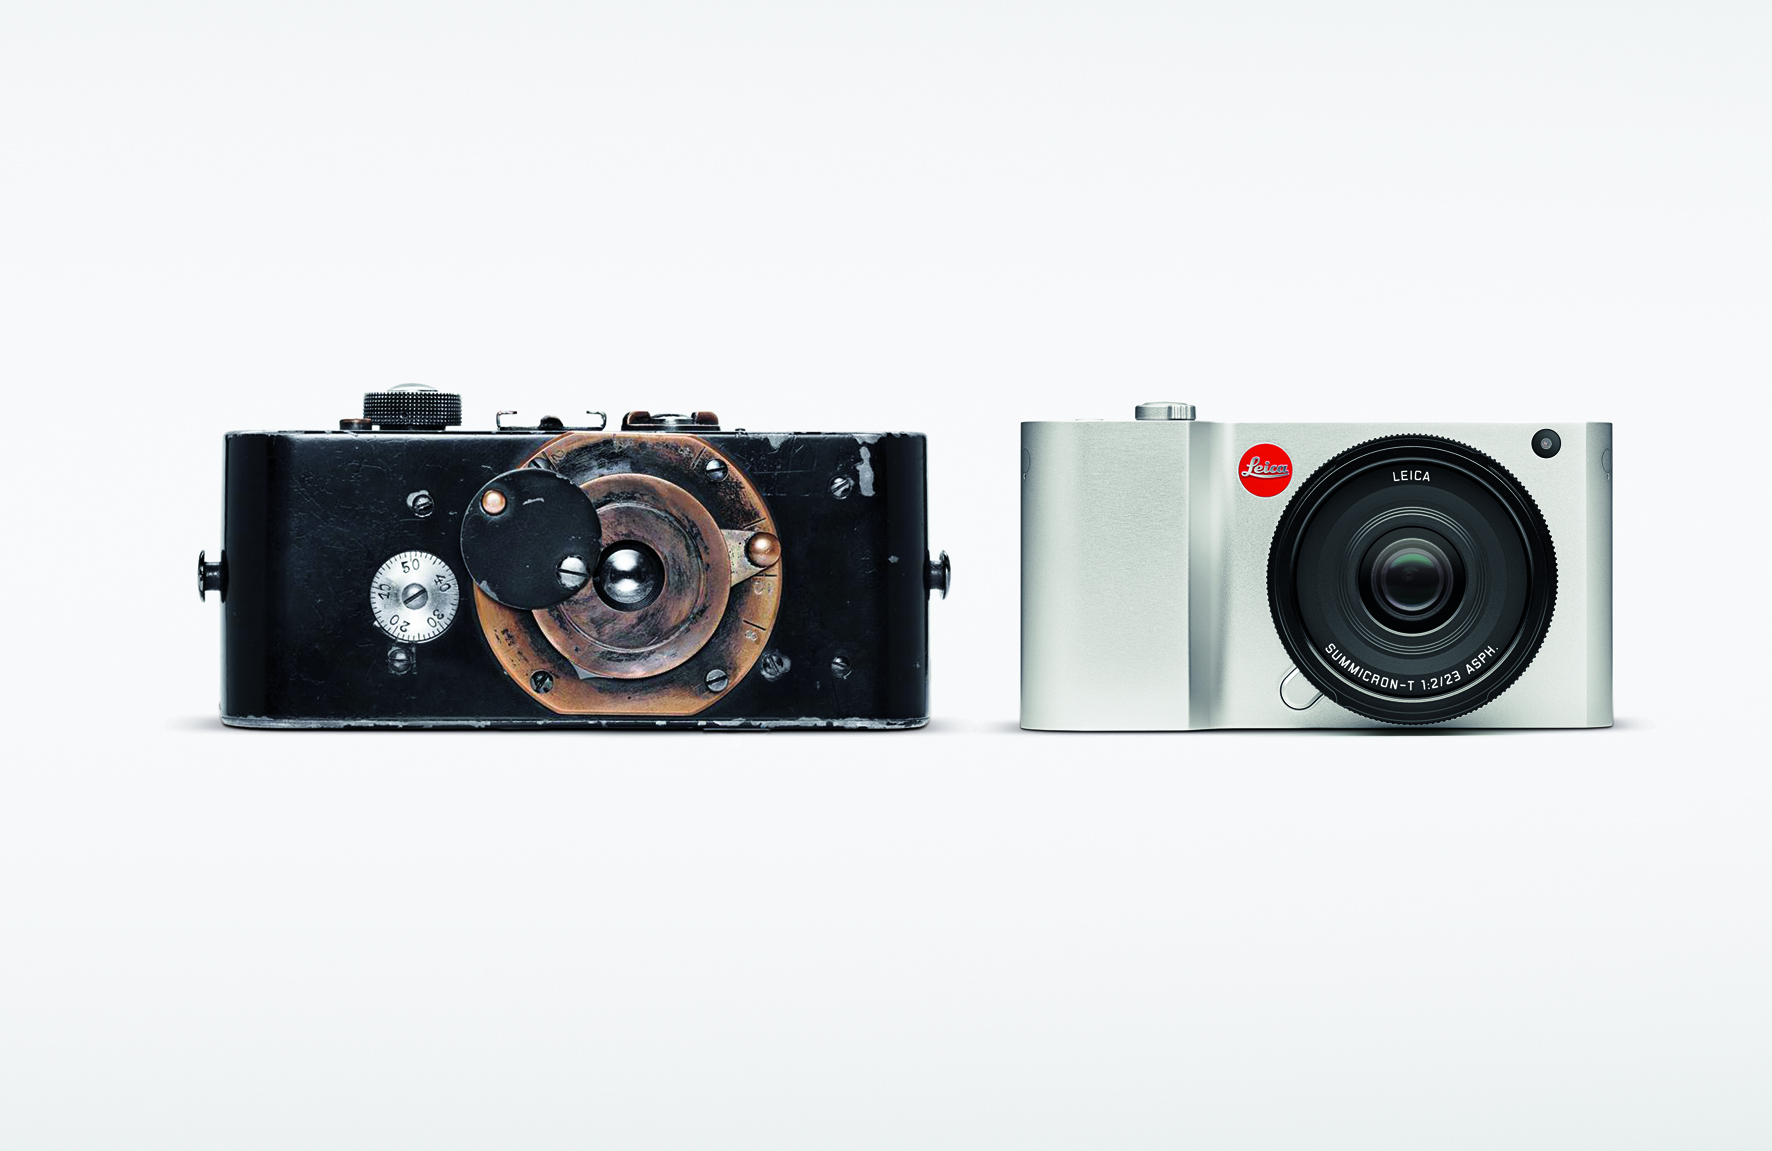 Leica has come a long way since the first 35mm Leica Camera